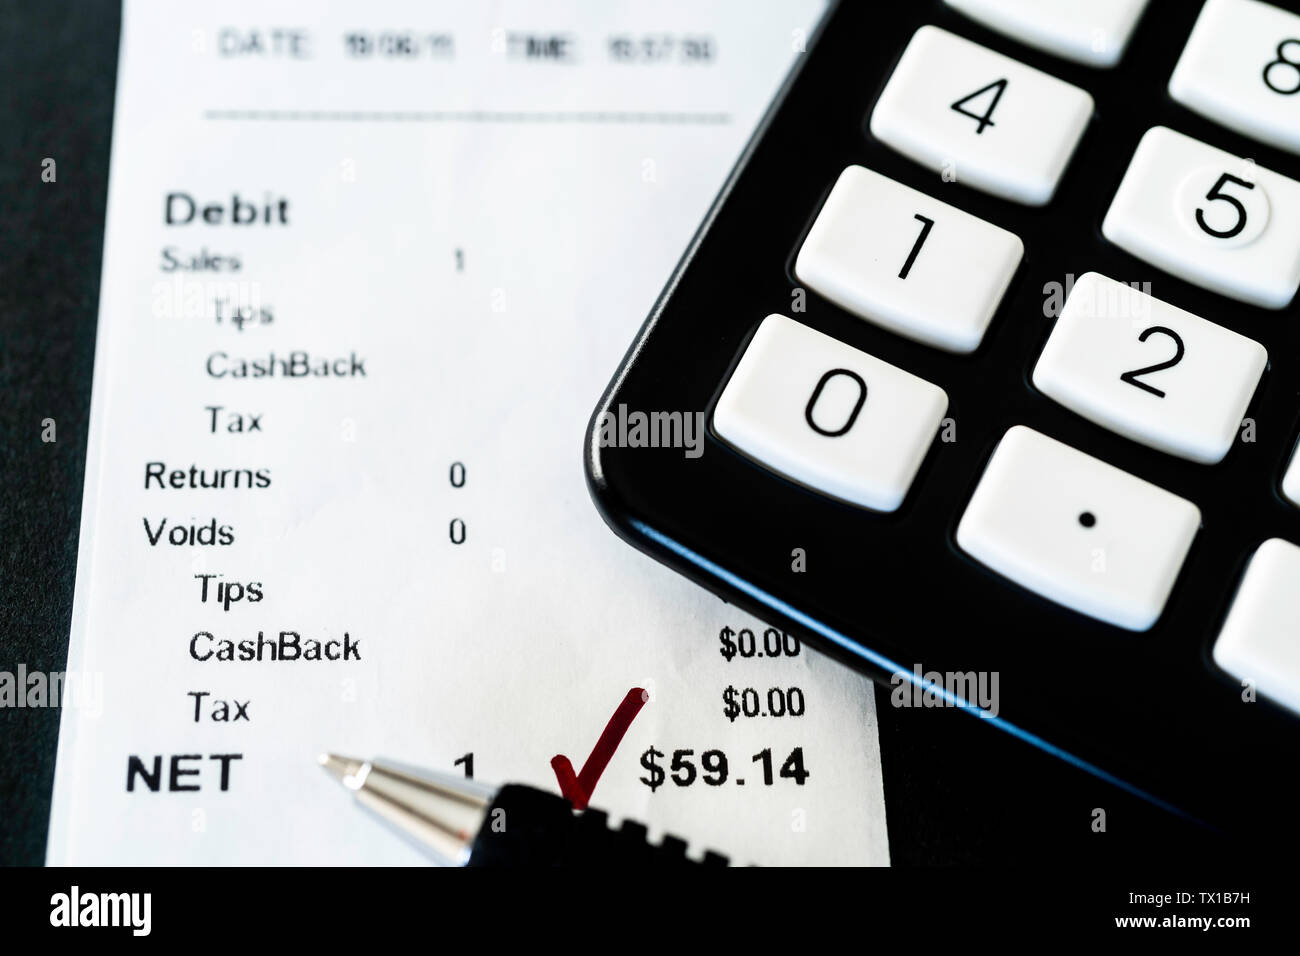 Reconciling Credit Card batch report with receipts at end of the day - Stock Image